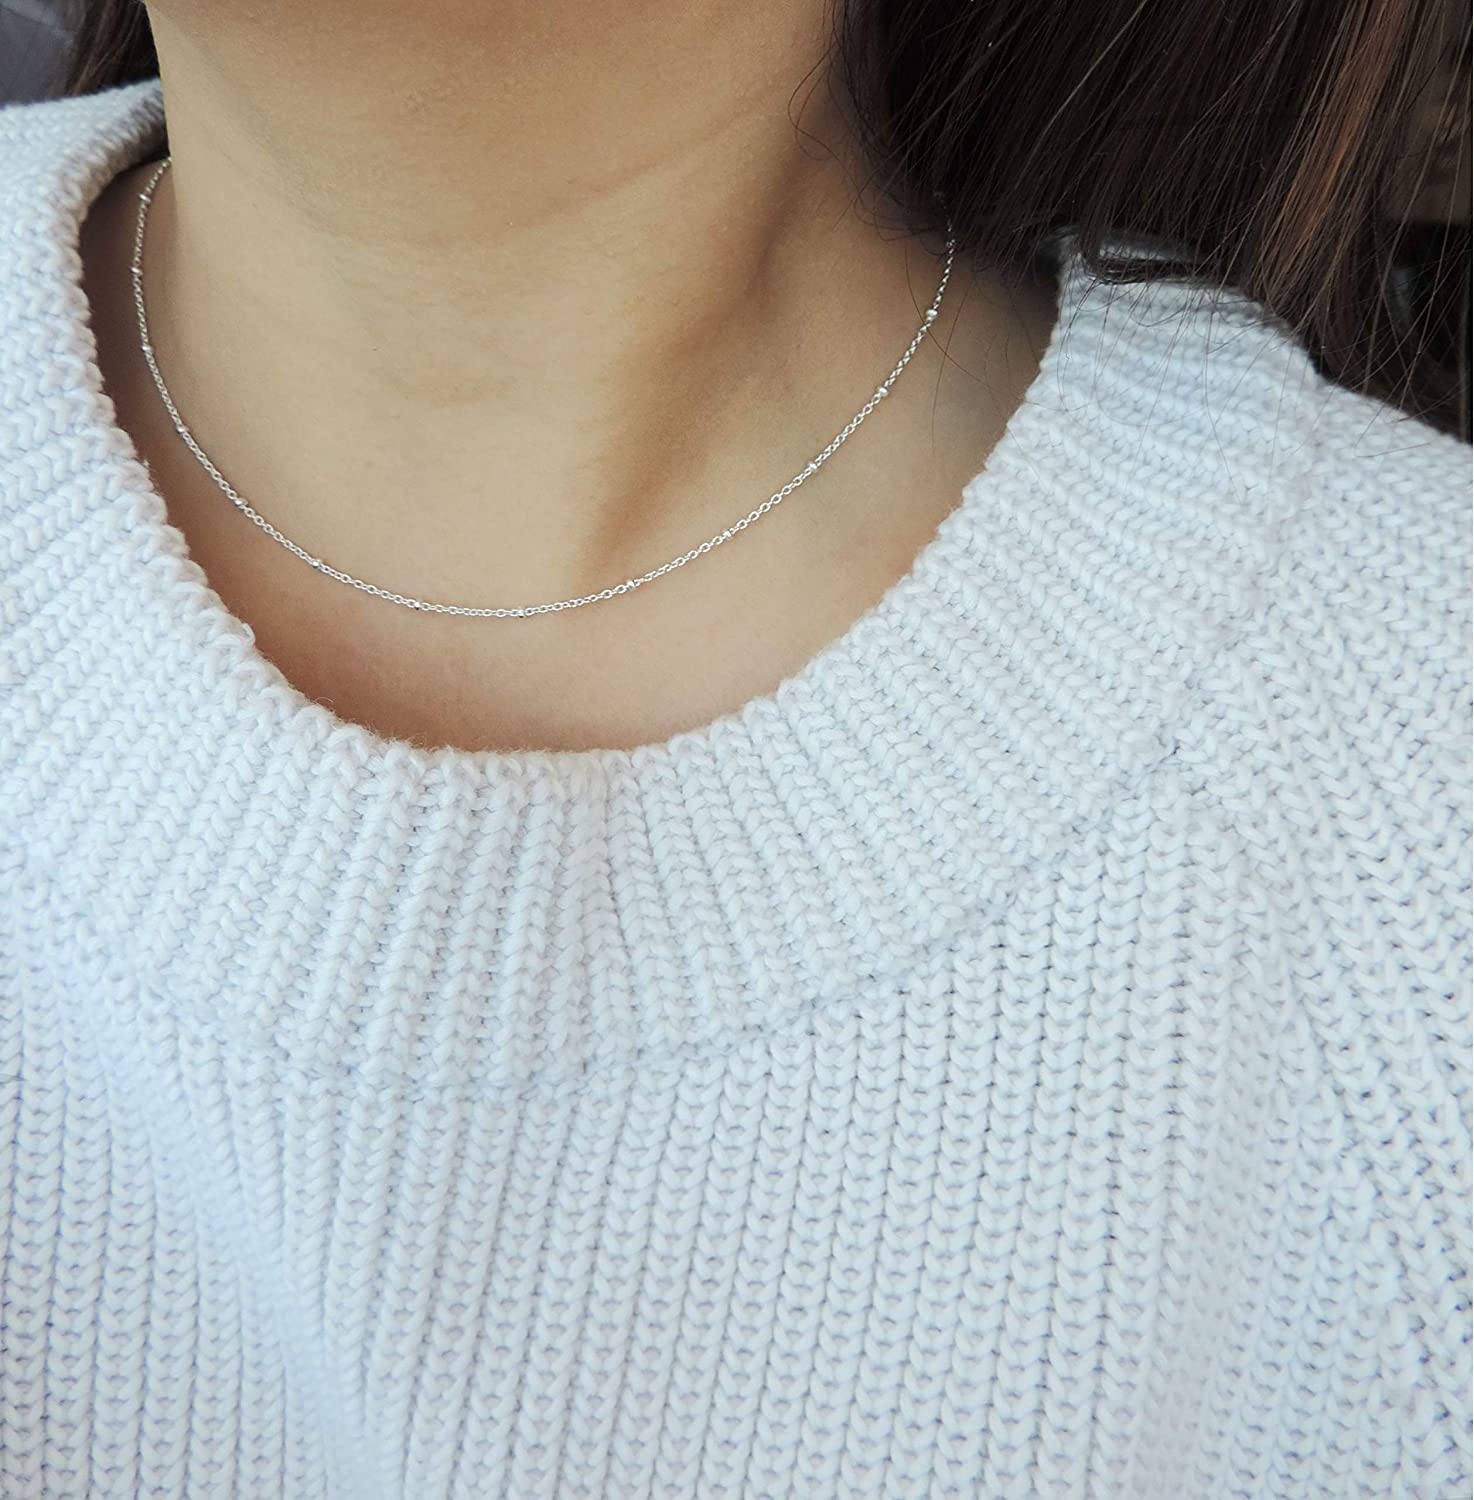 Satellite Necklace 18 Sterling Silver Nice! looks like white gold finish Rhodium Plated to prevent tarnish CHN010